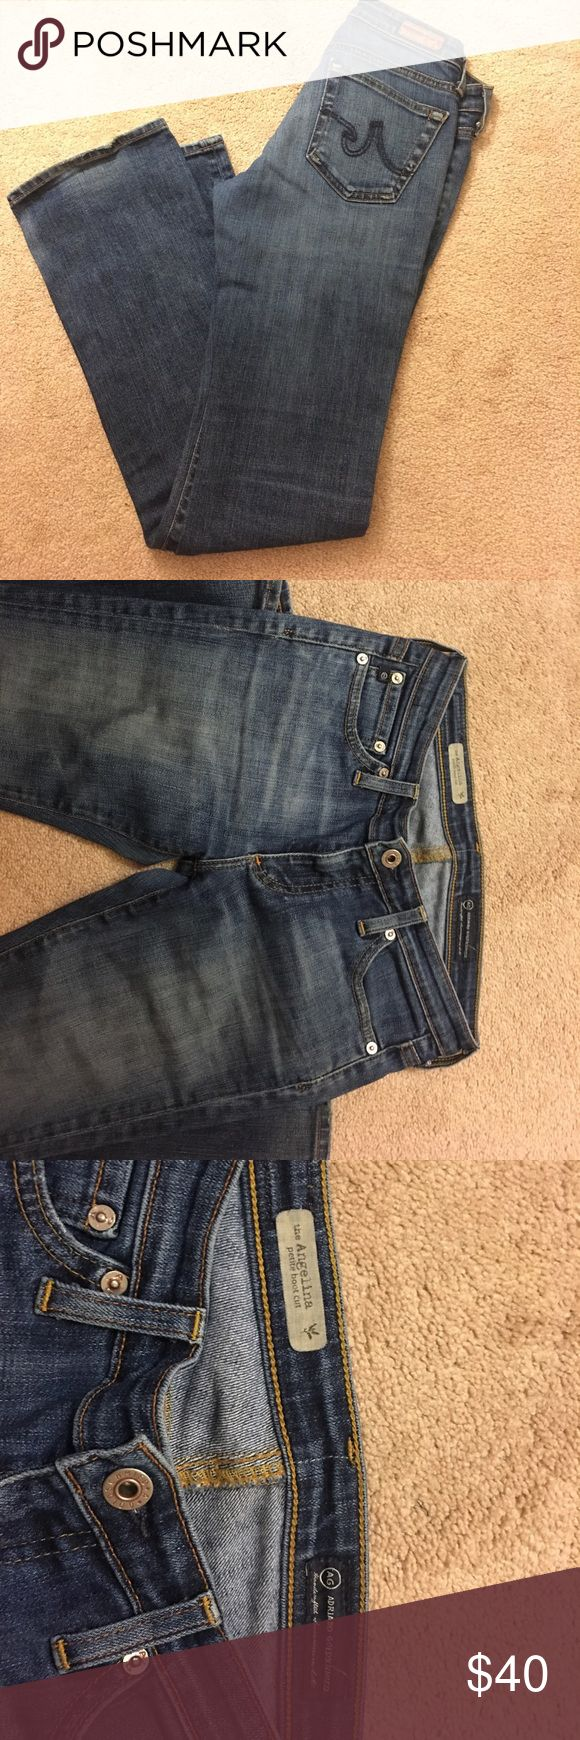 AG  woman jeans Adriano Goldschmied jeans , petite boot cut in size 26 , very beautiful comfortable material, pictures showing all defect , please let me know if you have any questions. Ag Adriano Goldschmied Pants Boot Cut & Flare